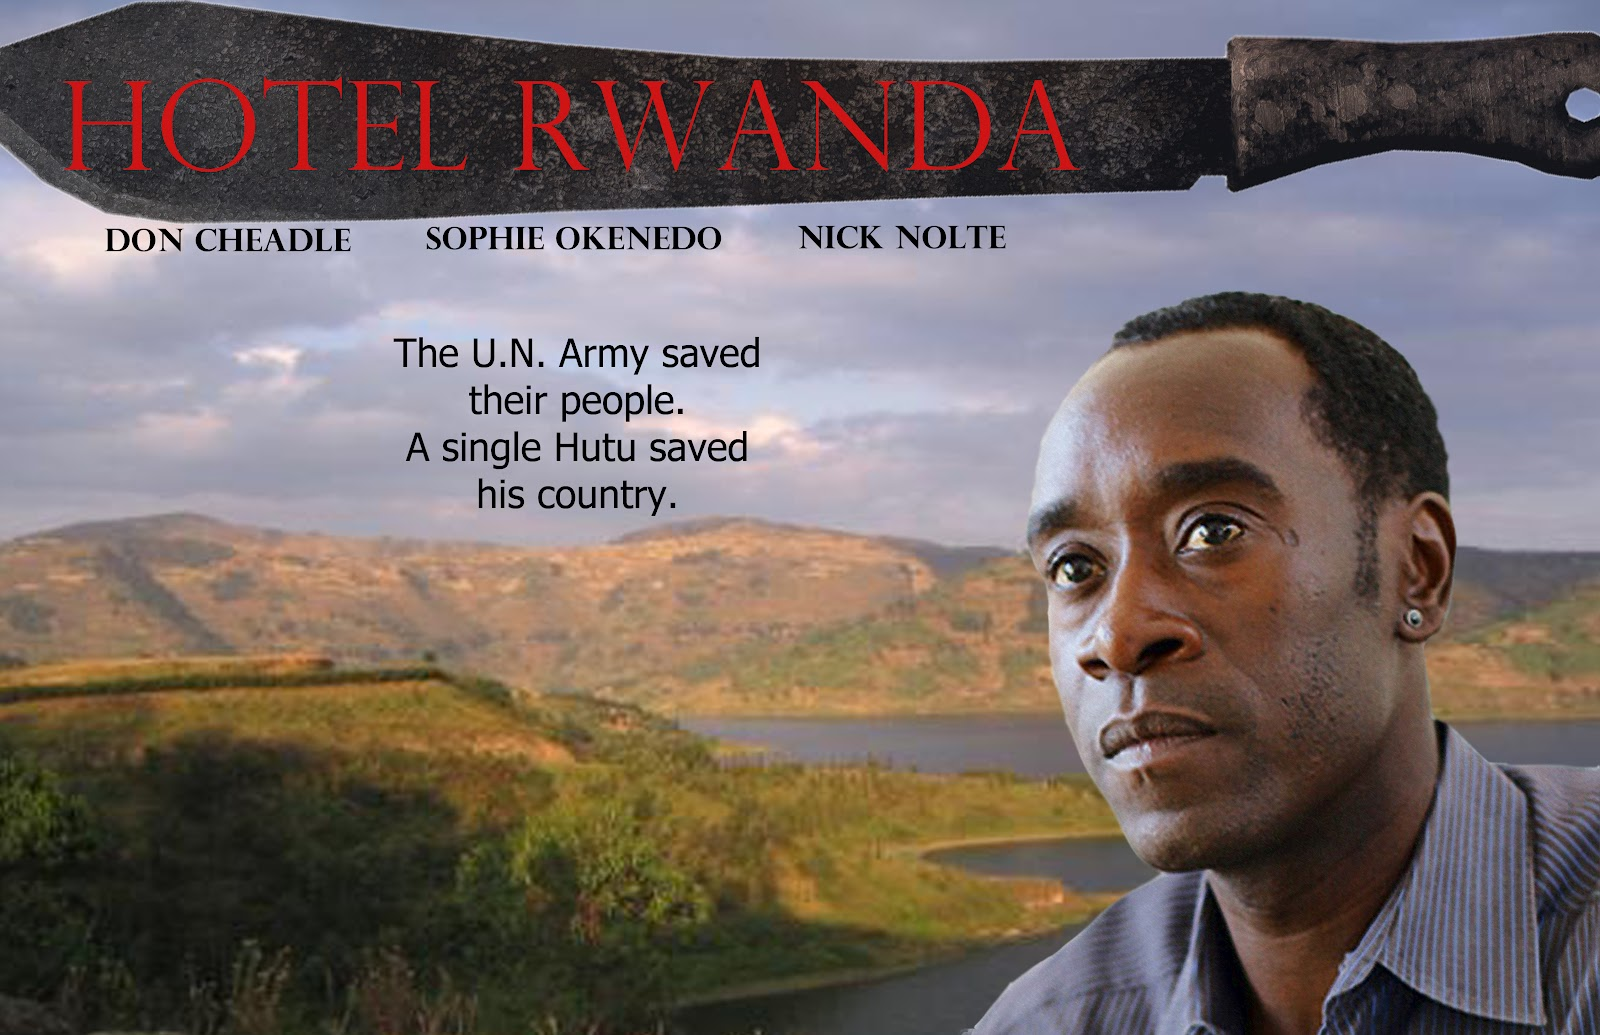 hotel rwanda the movie A hotel manager gives housing to tutsis refugees through their struggle with the militia.